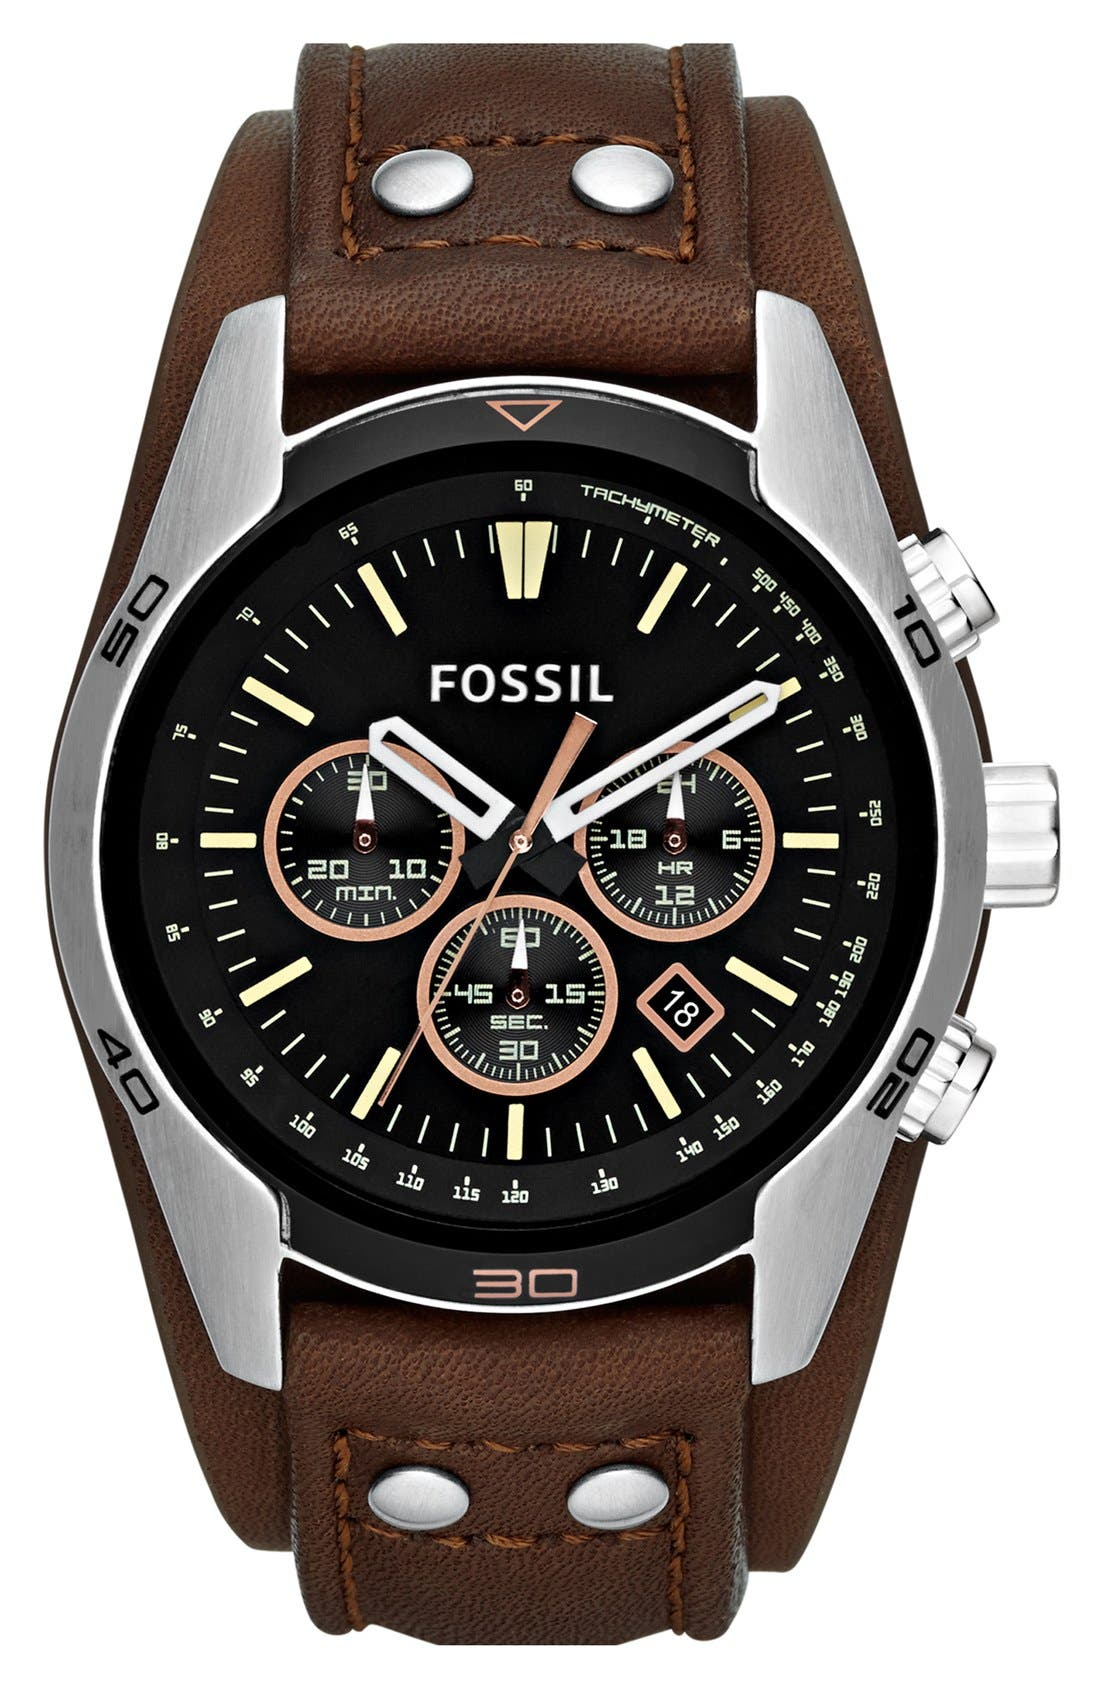 FOSSIL, 'Sport' Chronograph Leather Cuff Watch, 44mm, Main thumbnail 1, color, BROWN